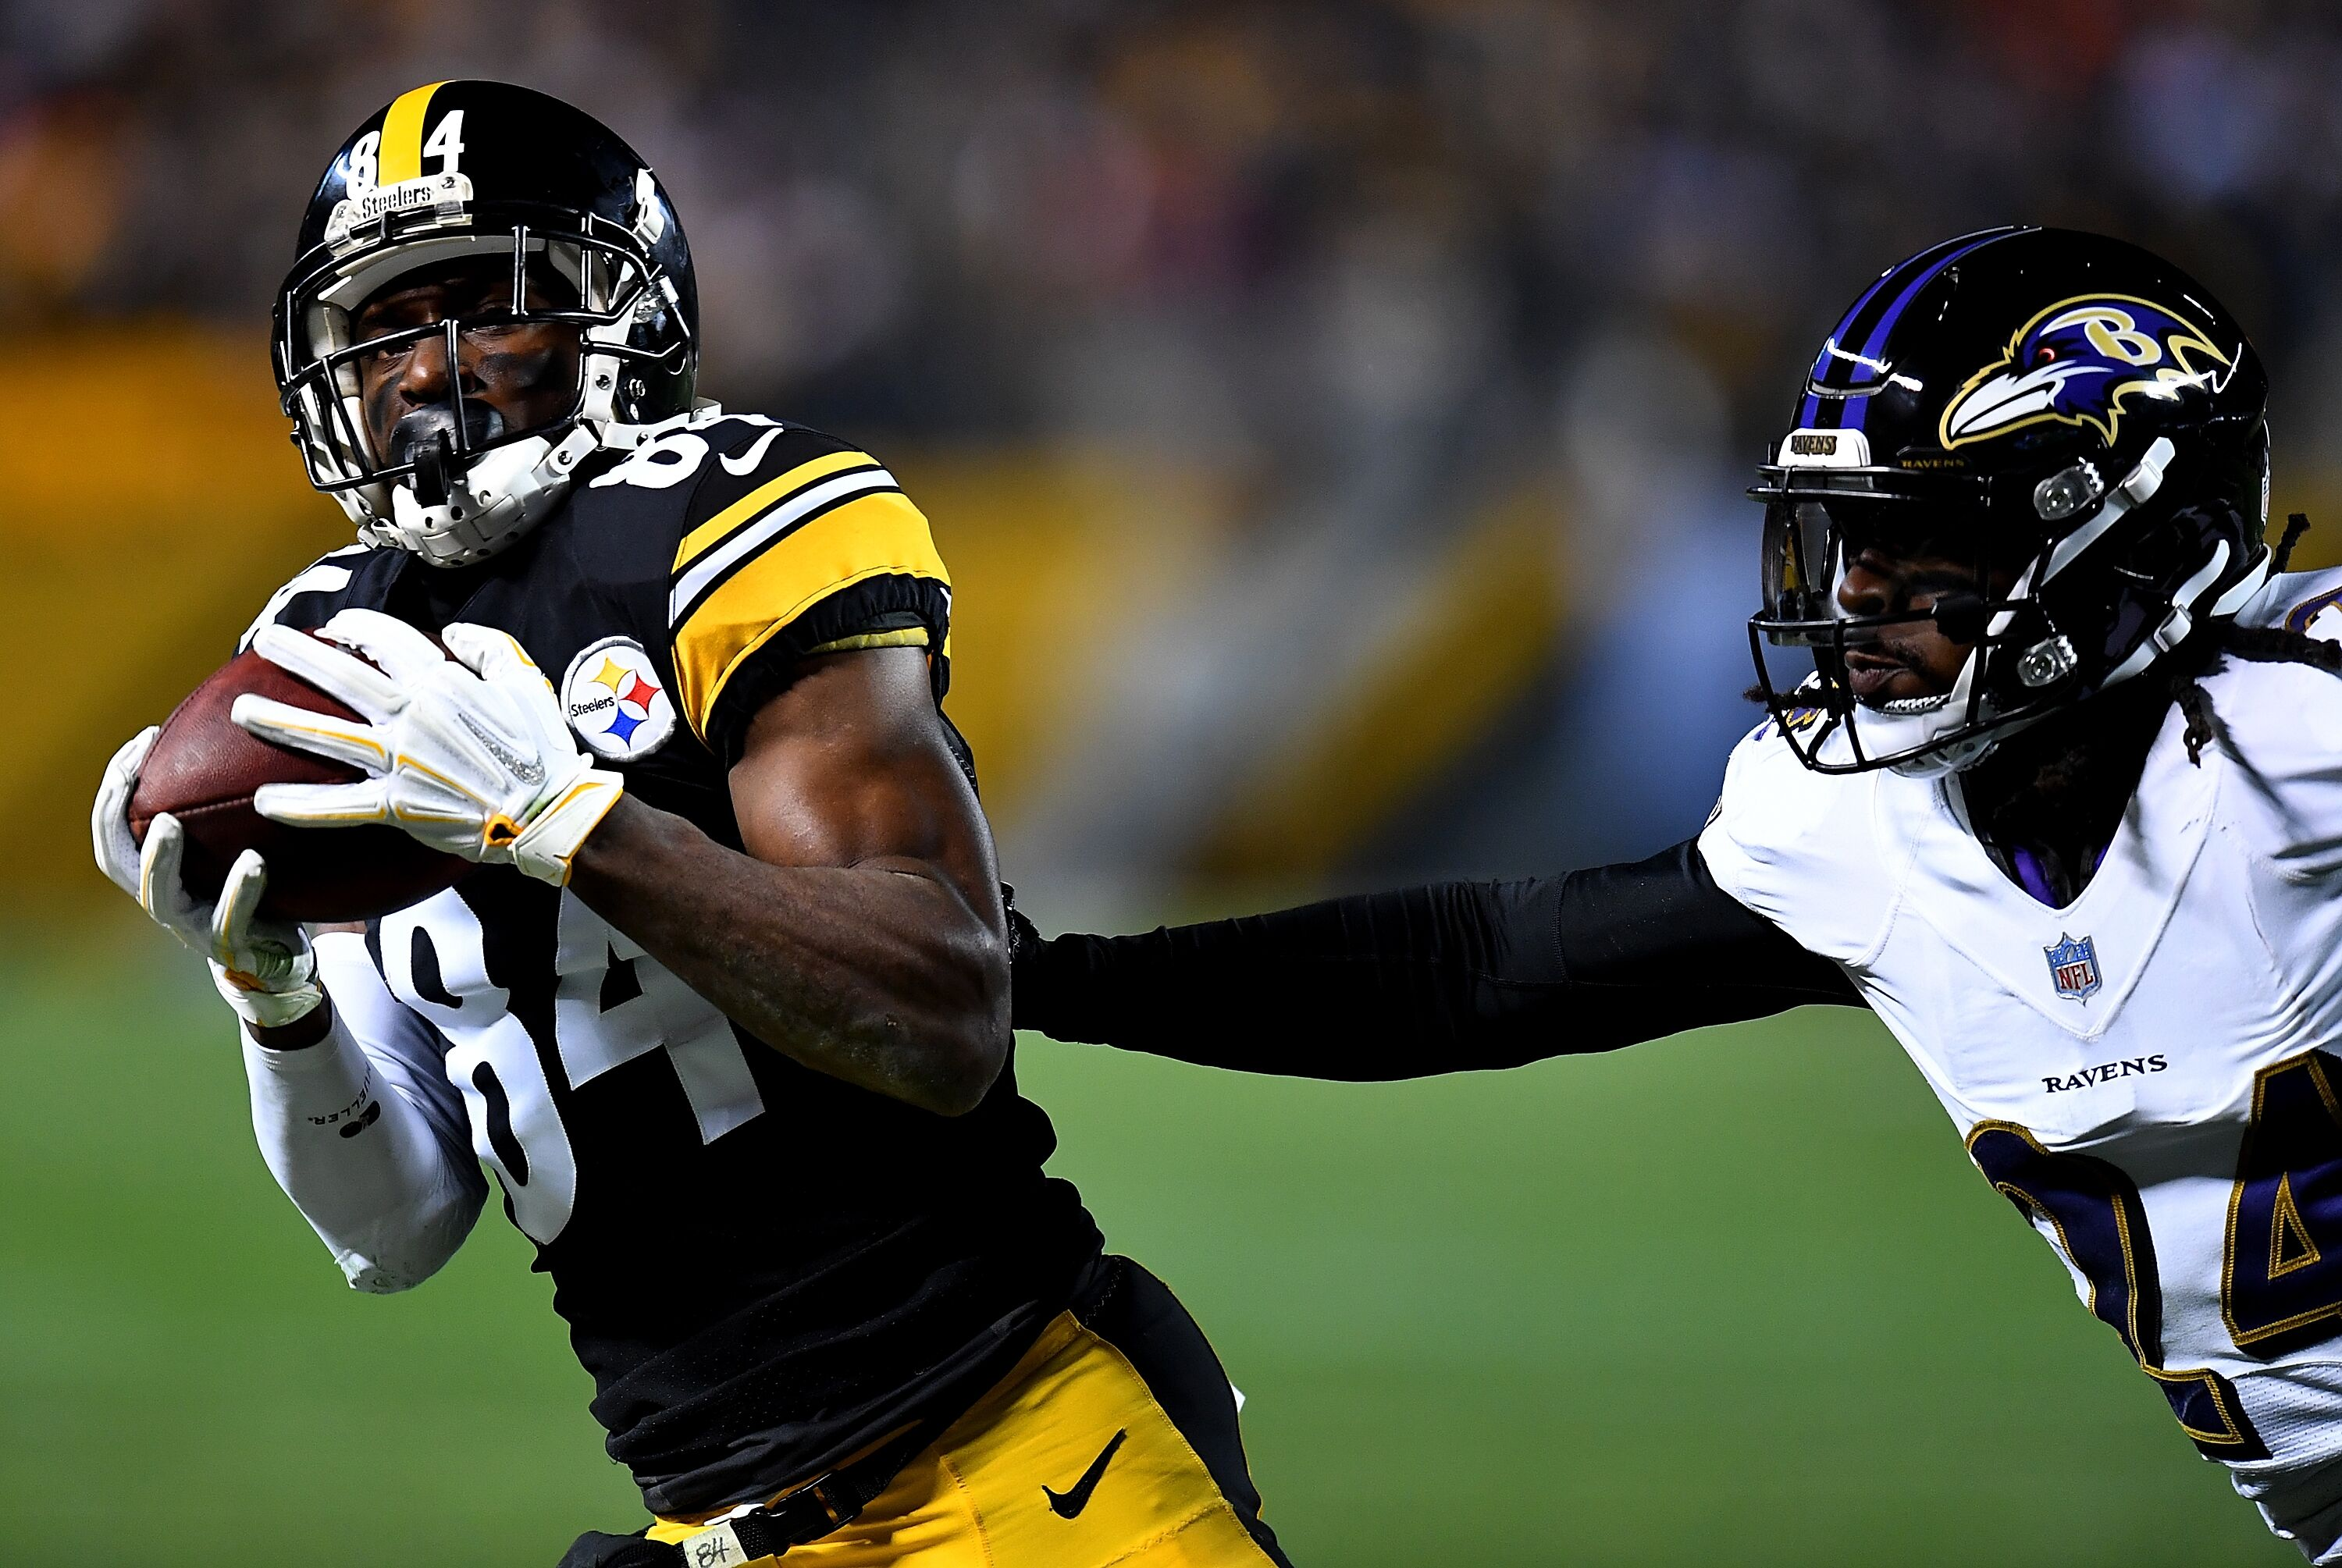 889917166-baltimore-ravens-v-pittsburgh-steelers.jpg